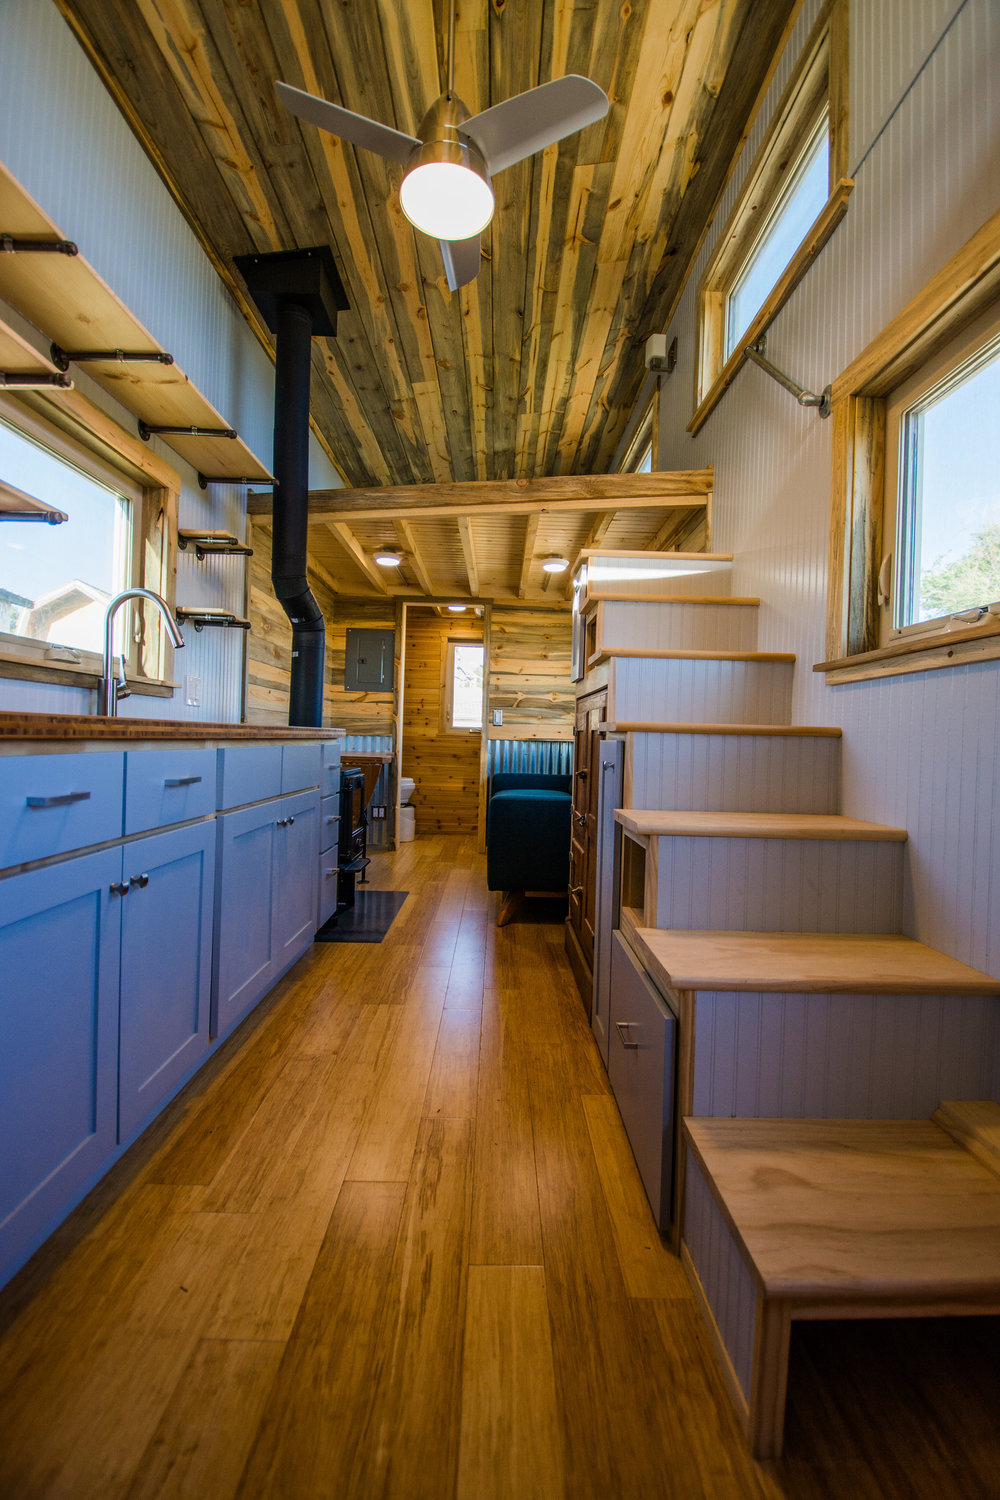 Dennis's Tiny House Kitchen and Stairs